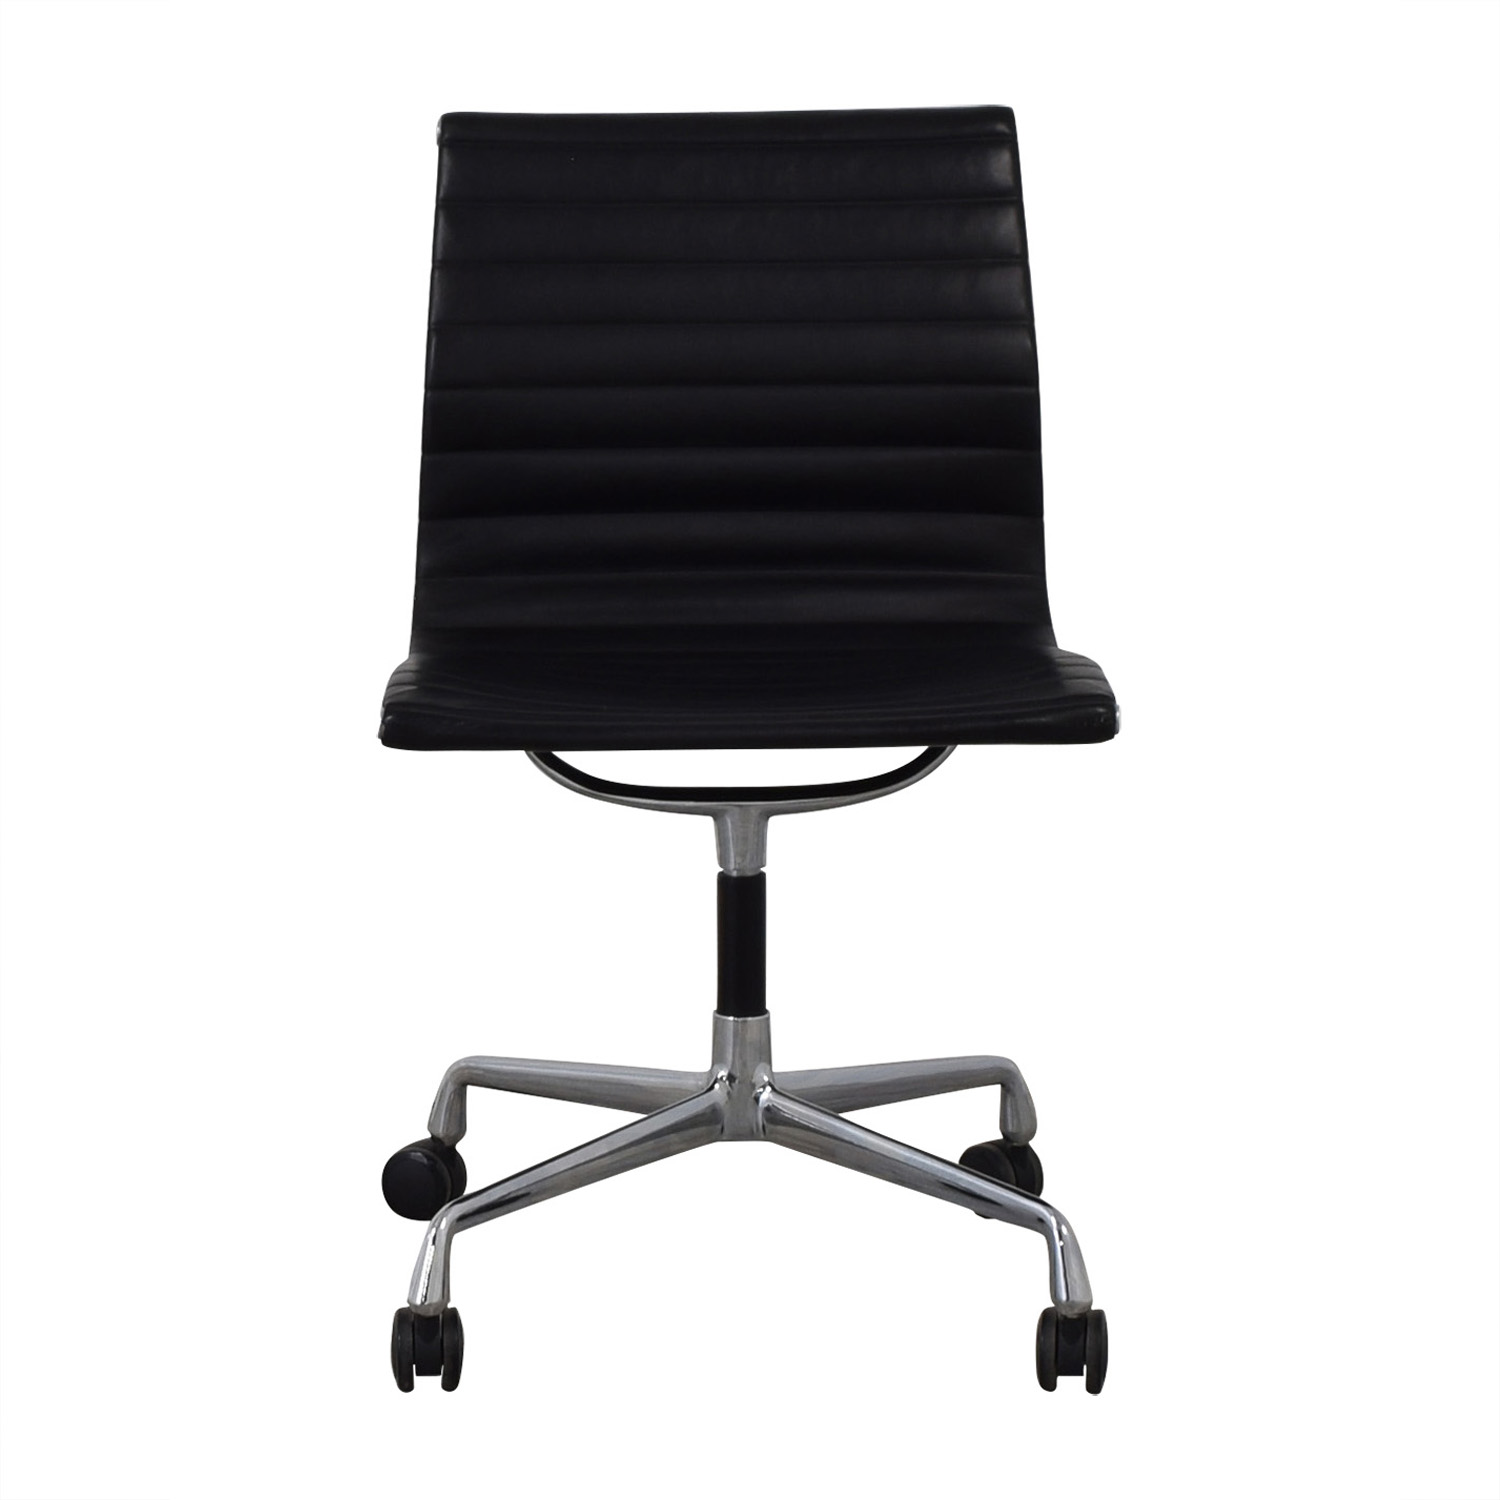 Rove Concepts Eames-Style Office Chair sale